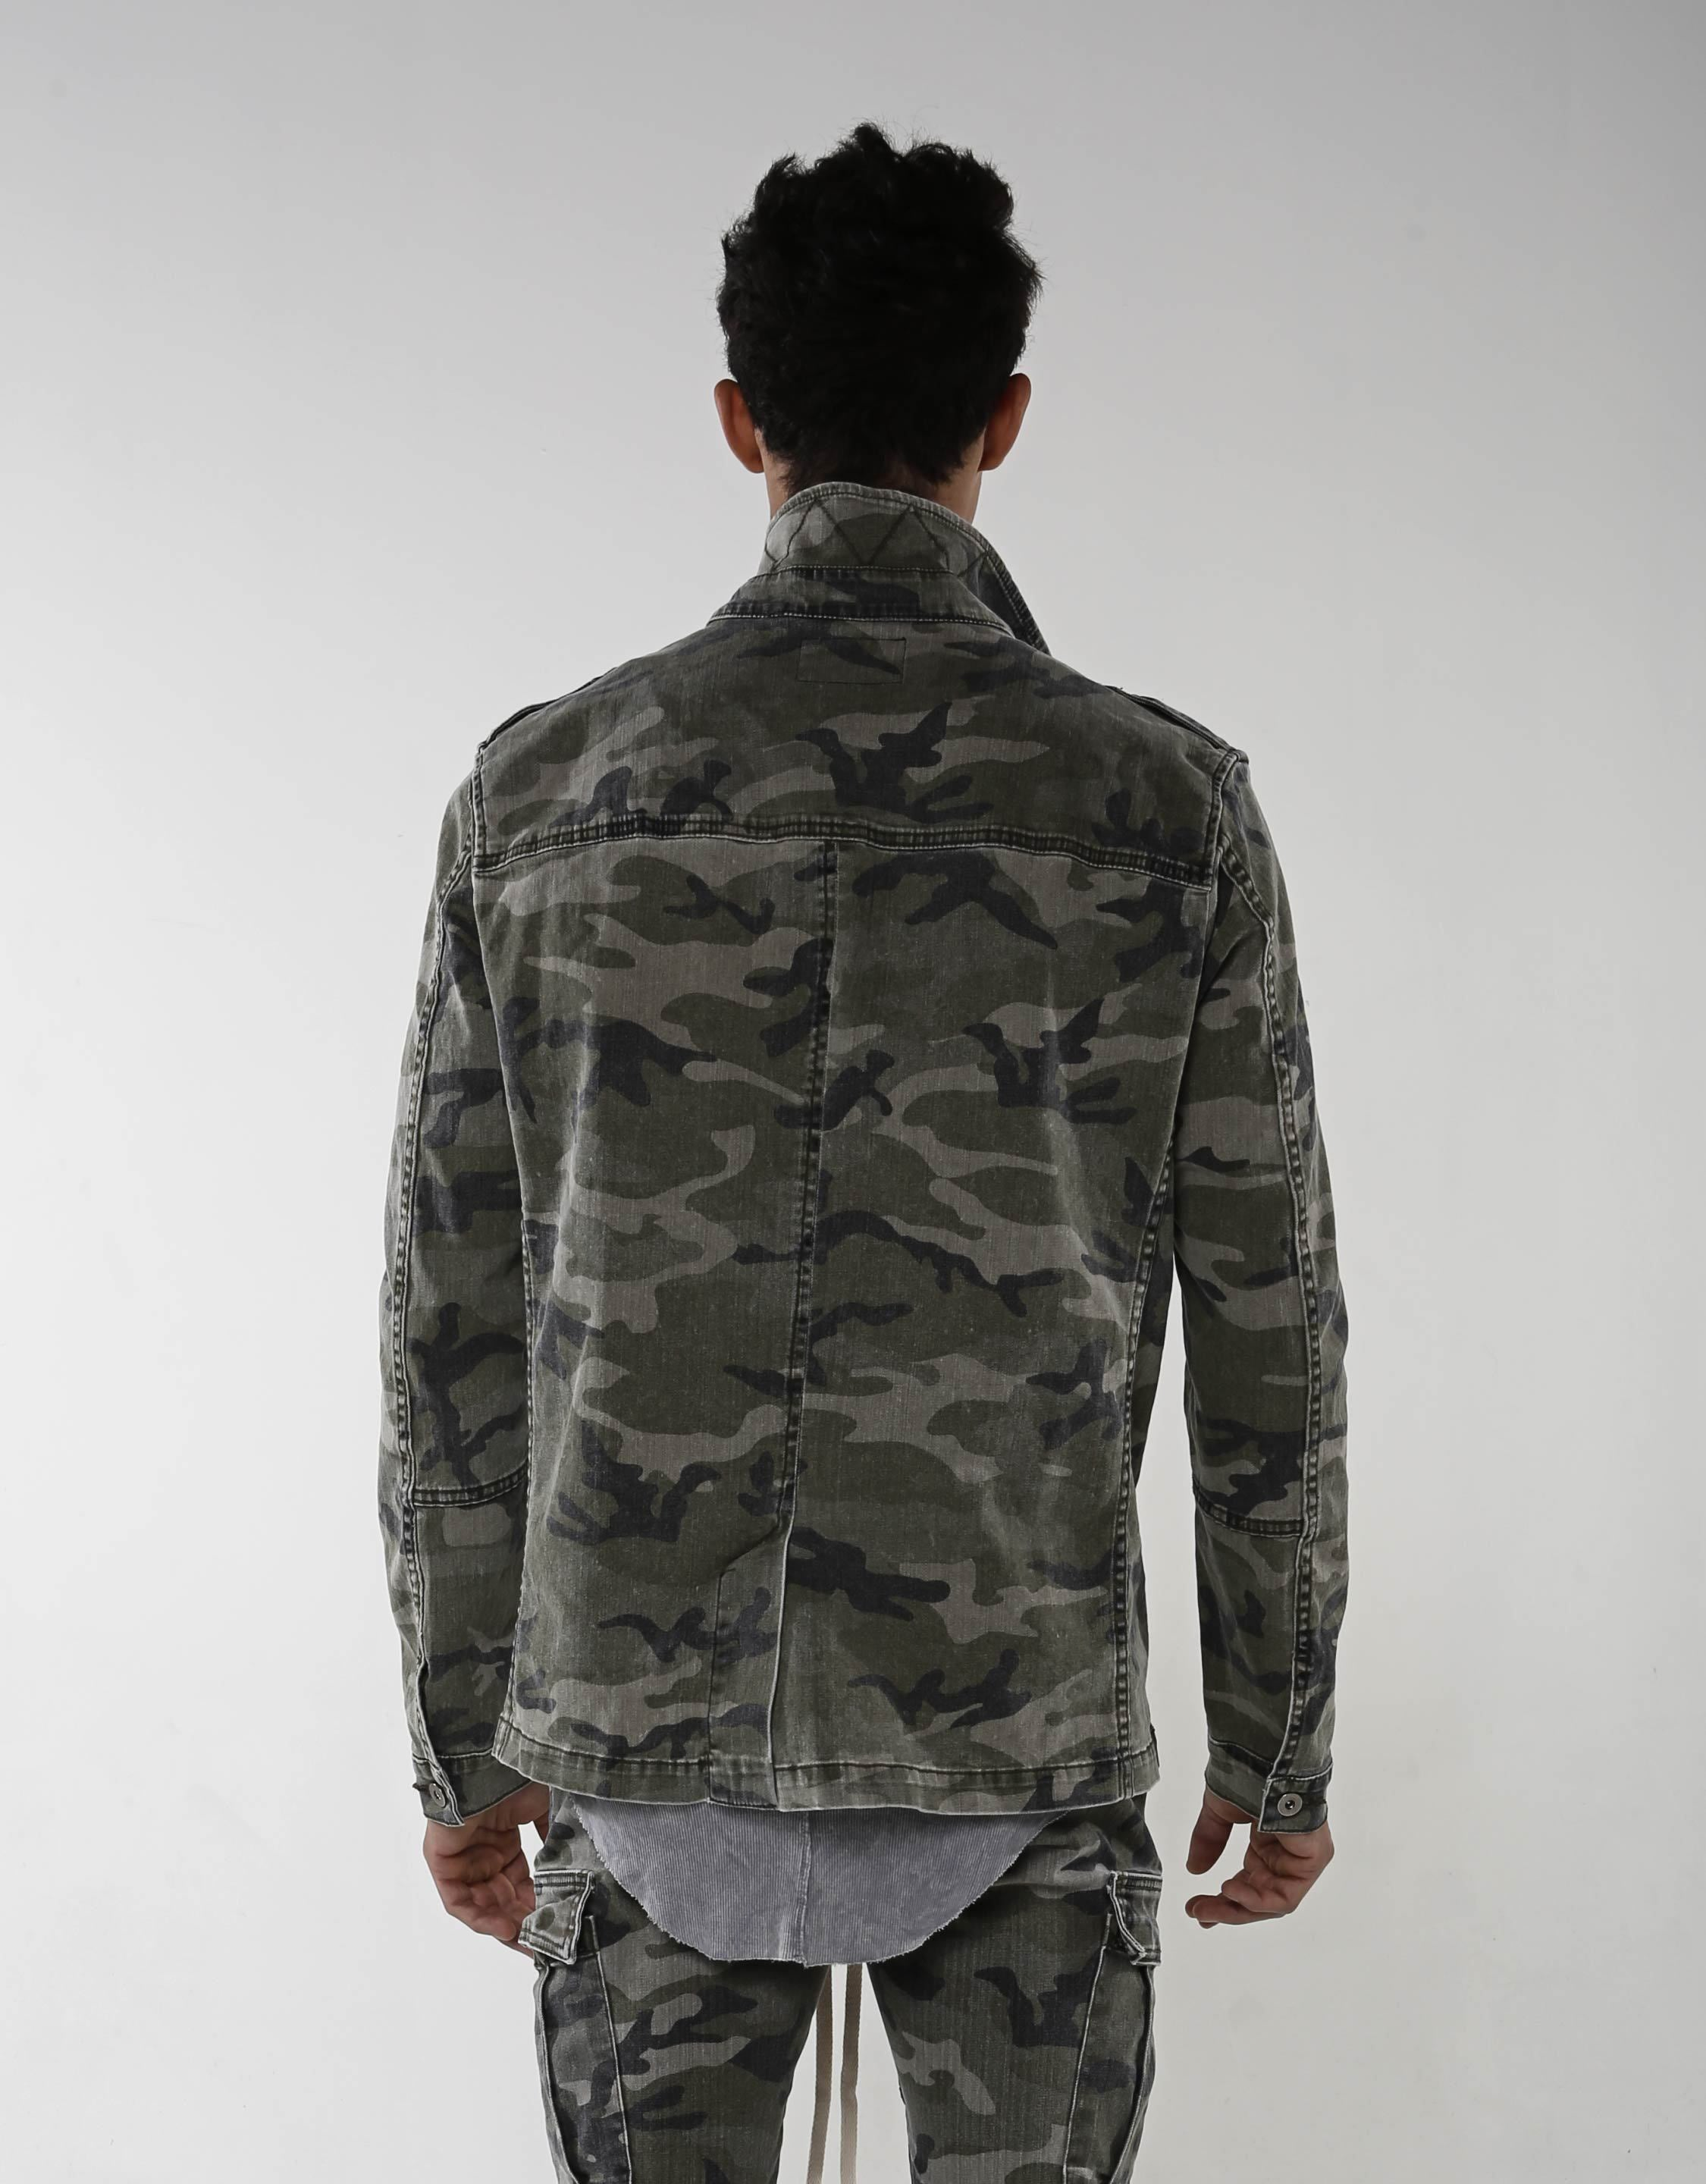 Panel Jacket - Faded Camo - Golden Aesthetics